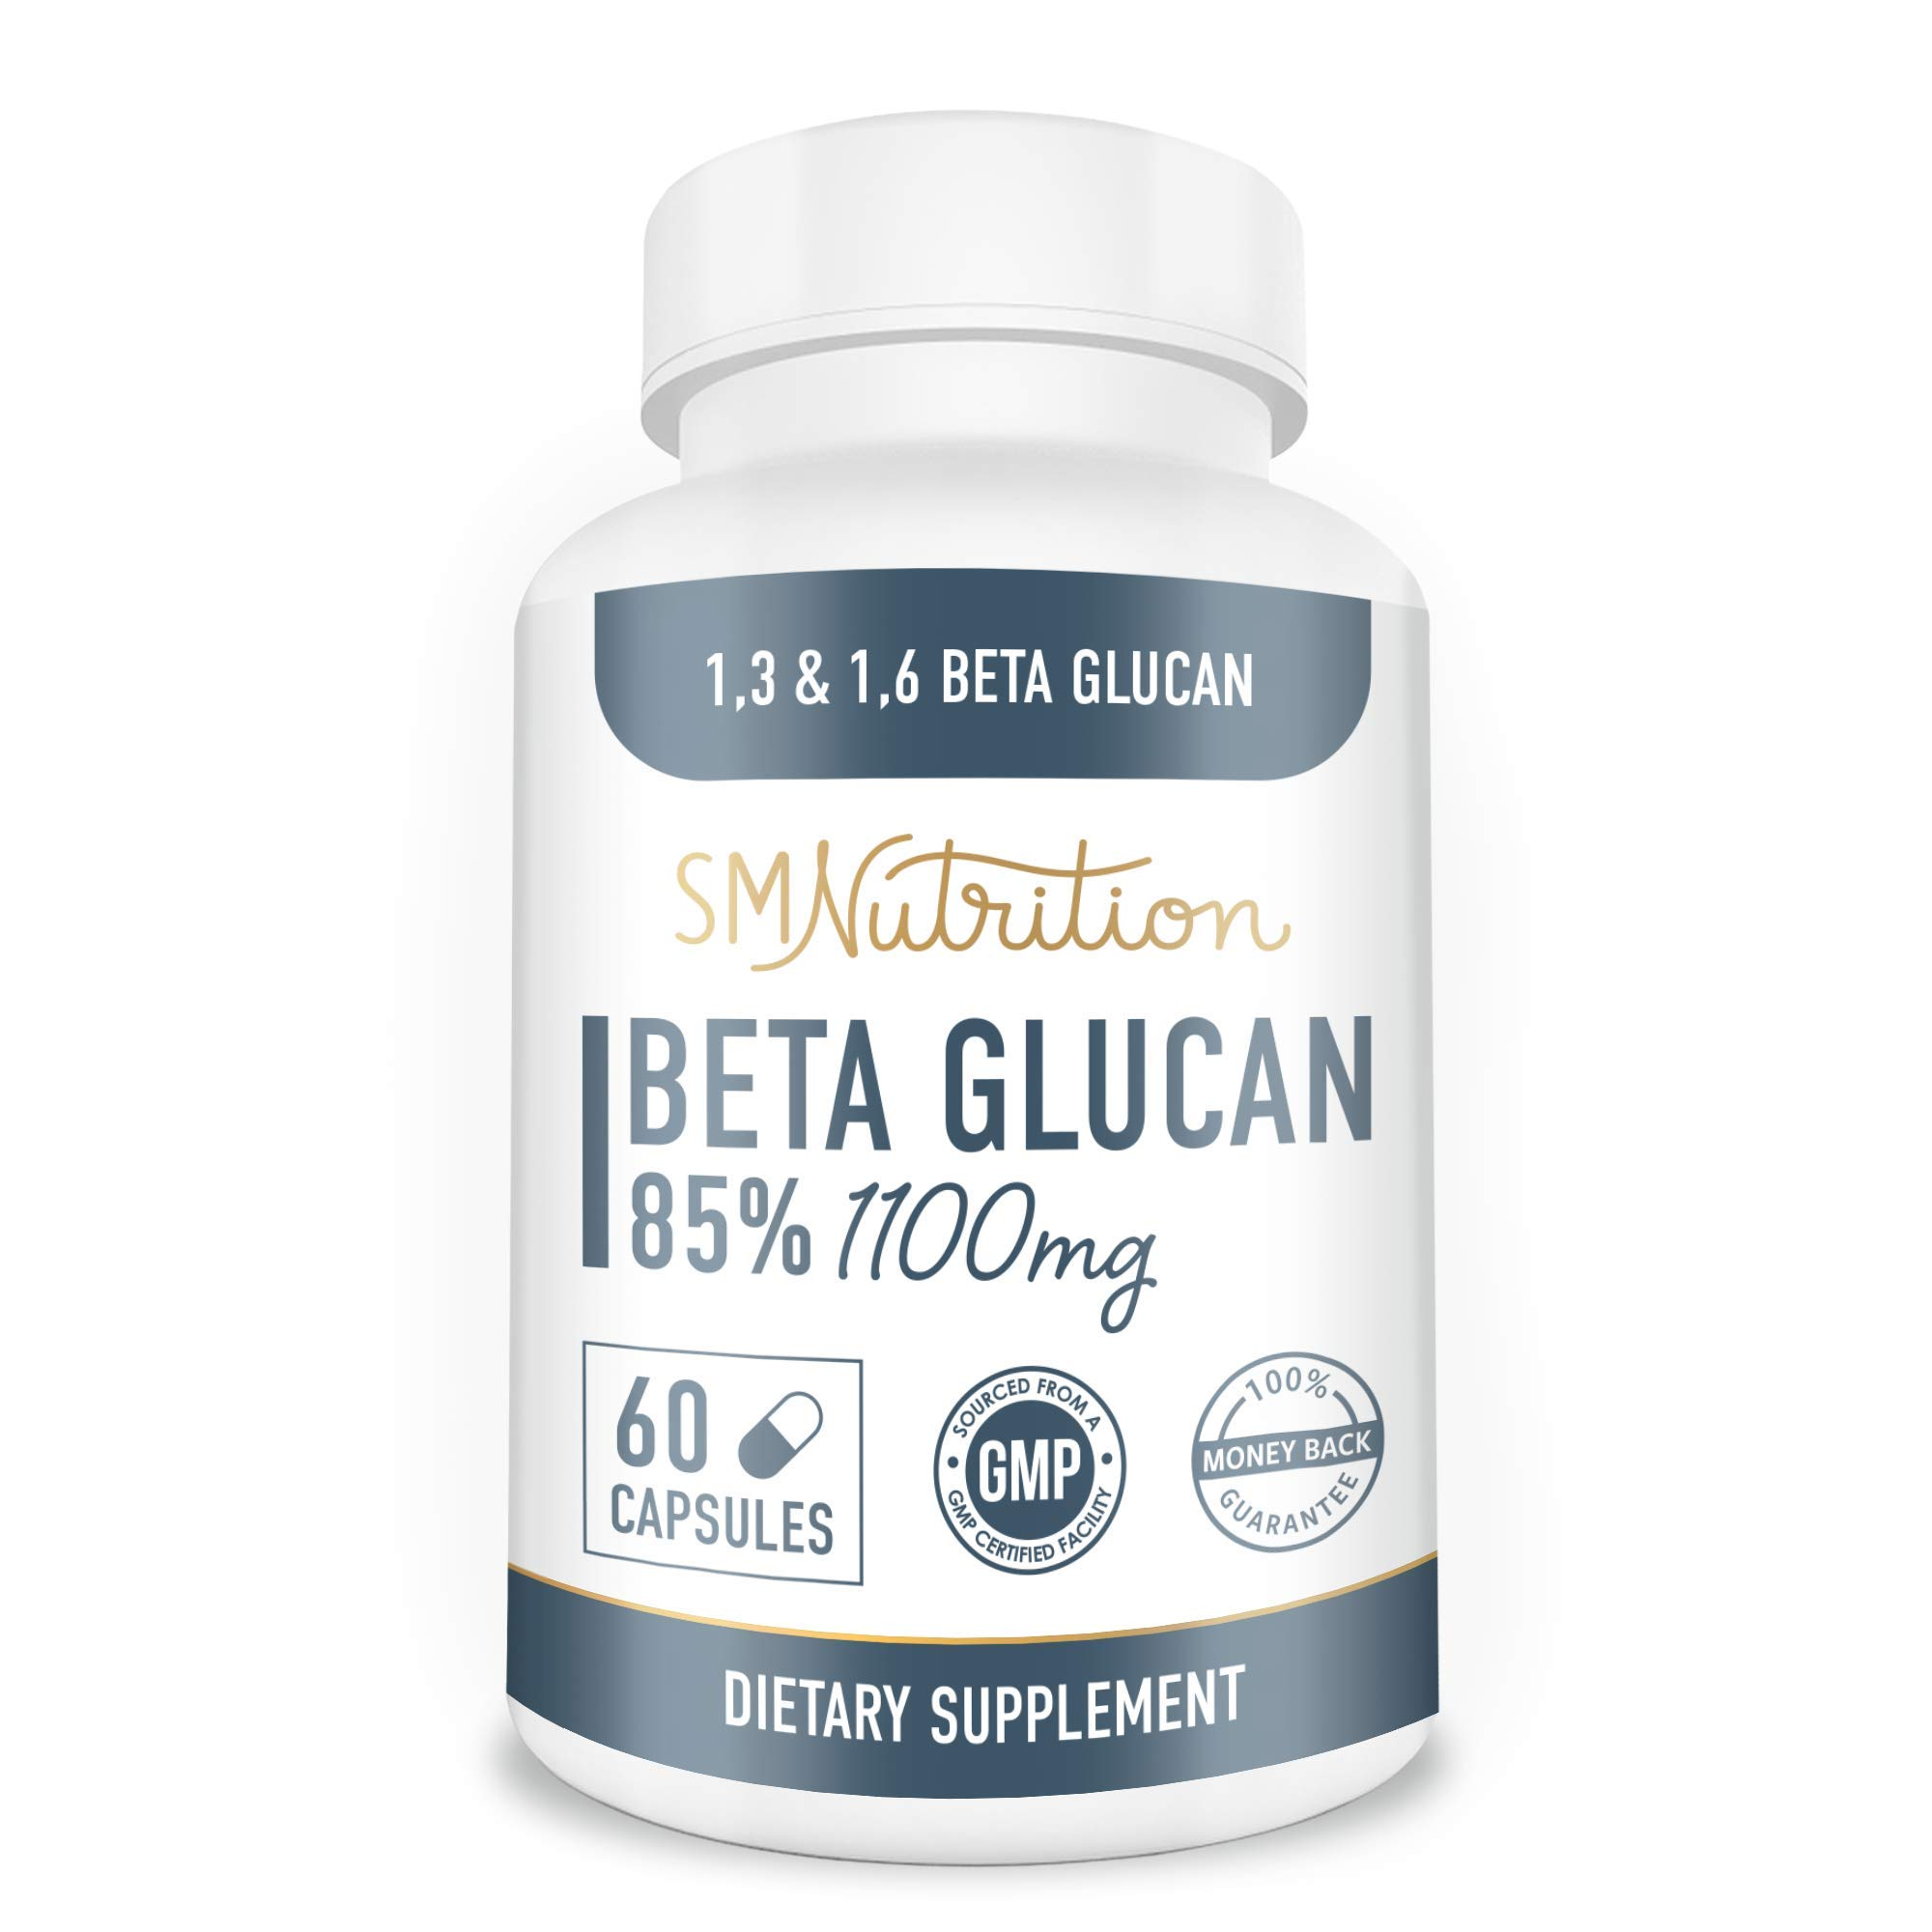 Beta Glucan Capsules - 1100mg (60 Capsules) - Beta Glucans 1,3, 1,6 D for Immune Support, Immune System, Immune Health* - Third-Party Tested, GMP, Non-GMO, Gluten-Free